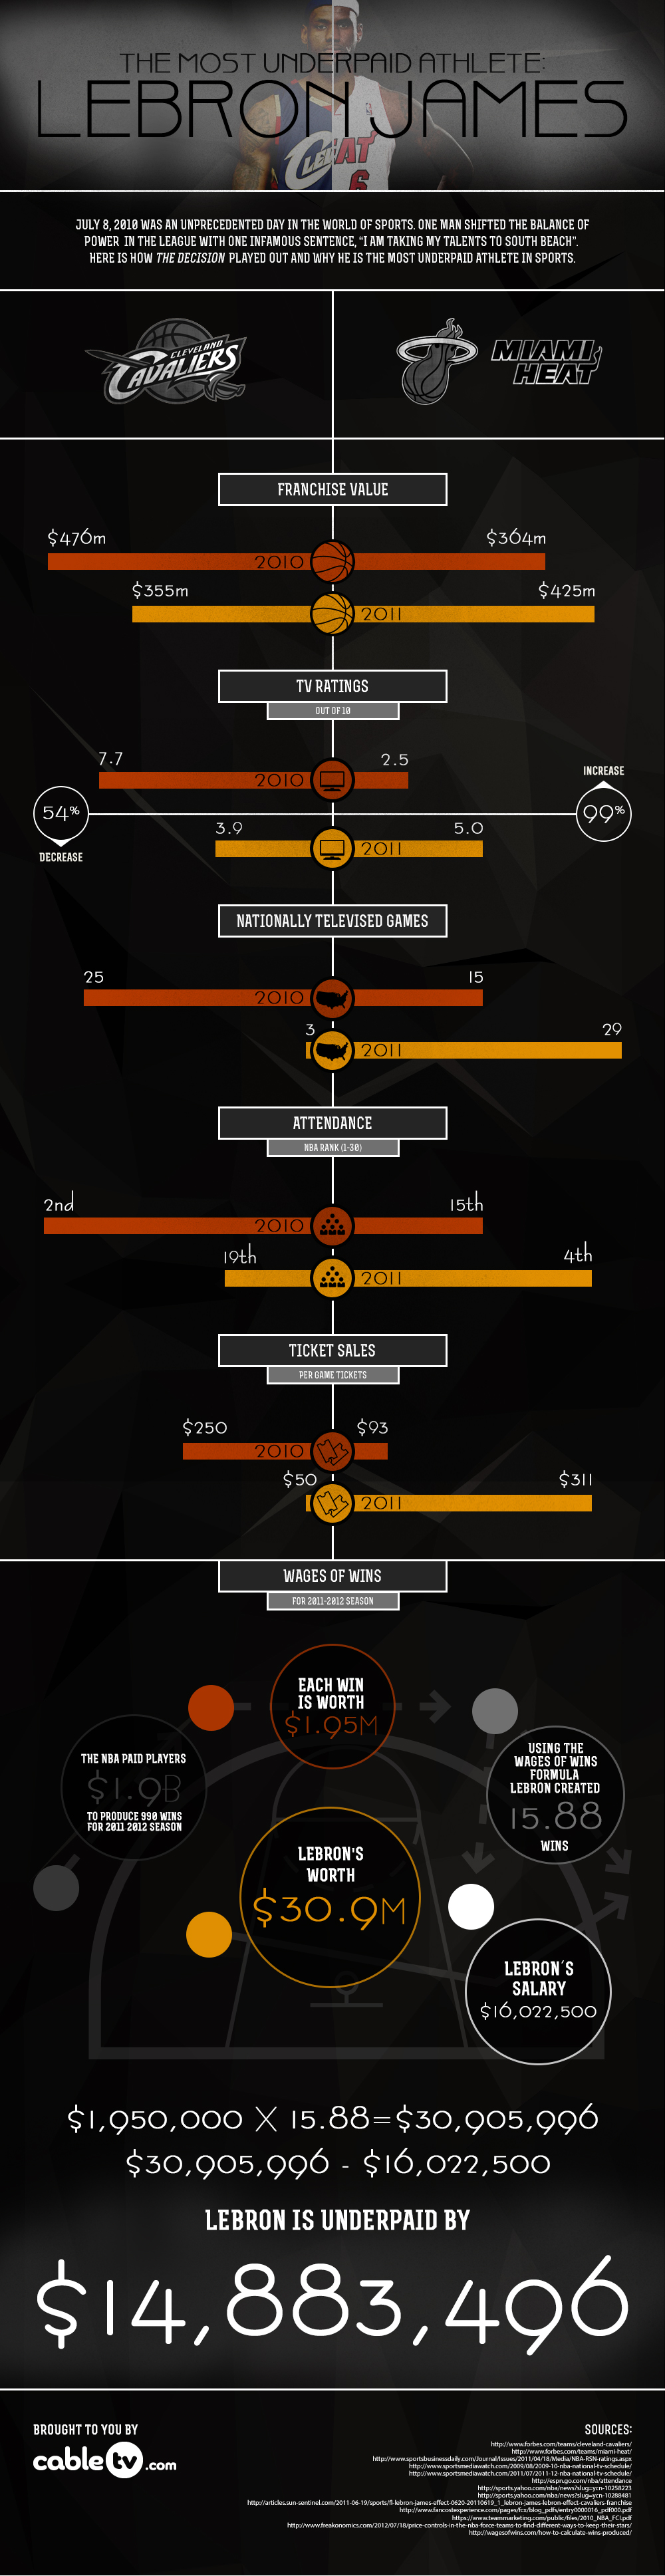 Lebron James Infographic on Salary